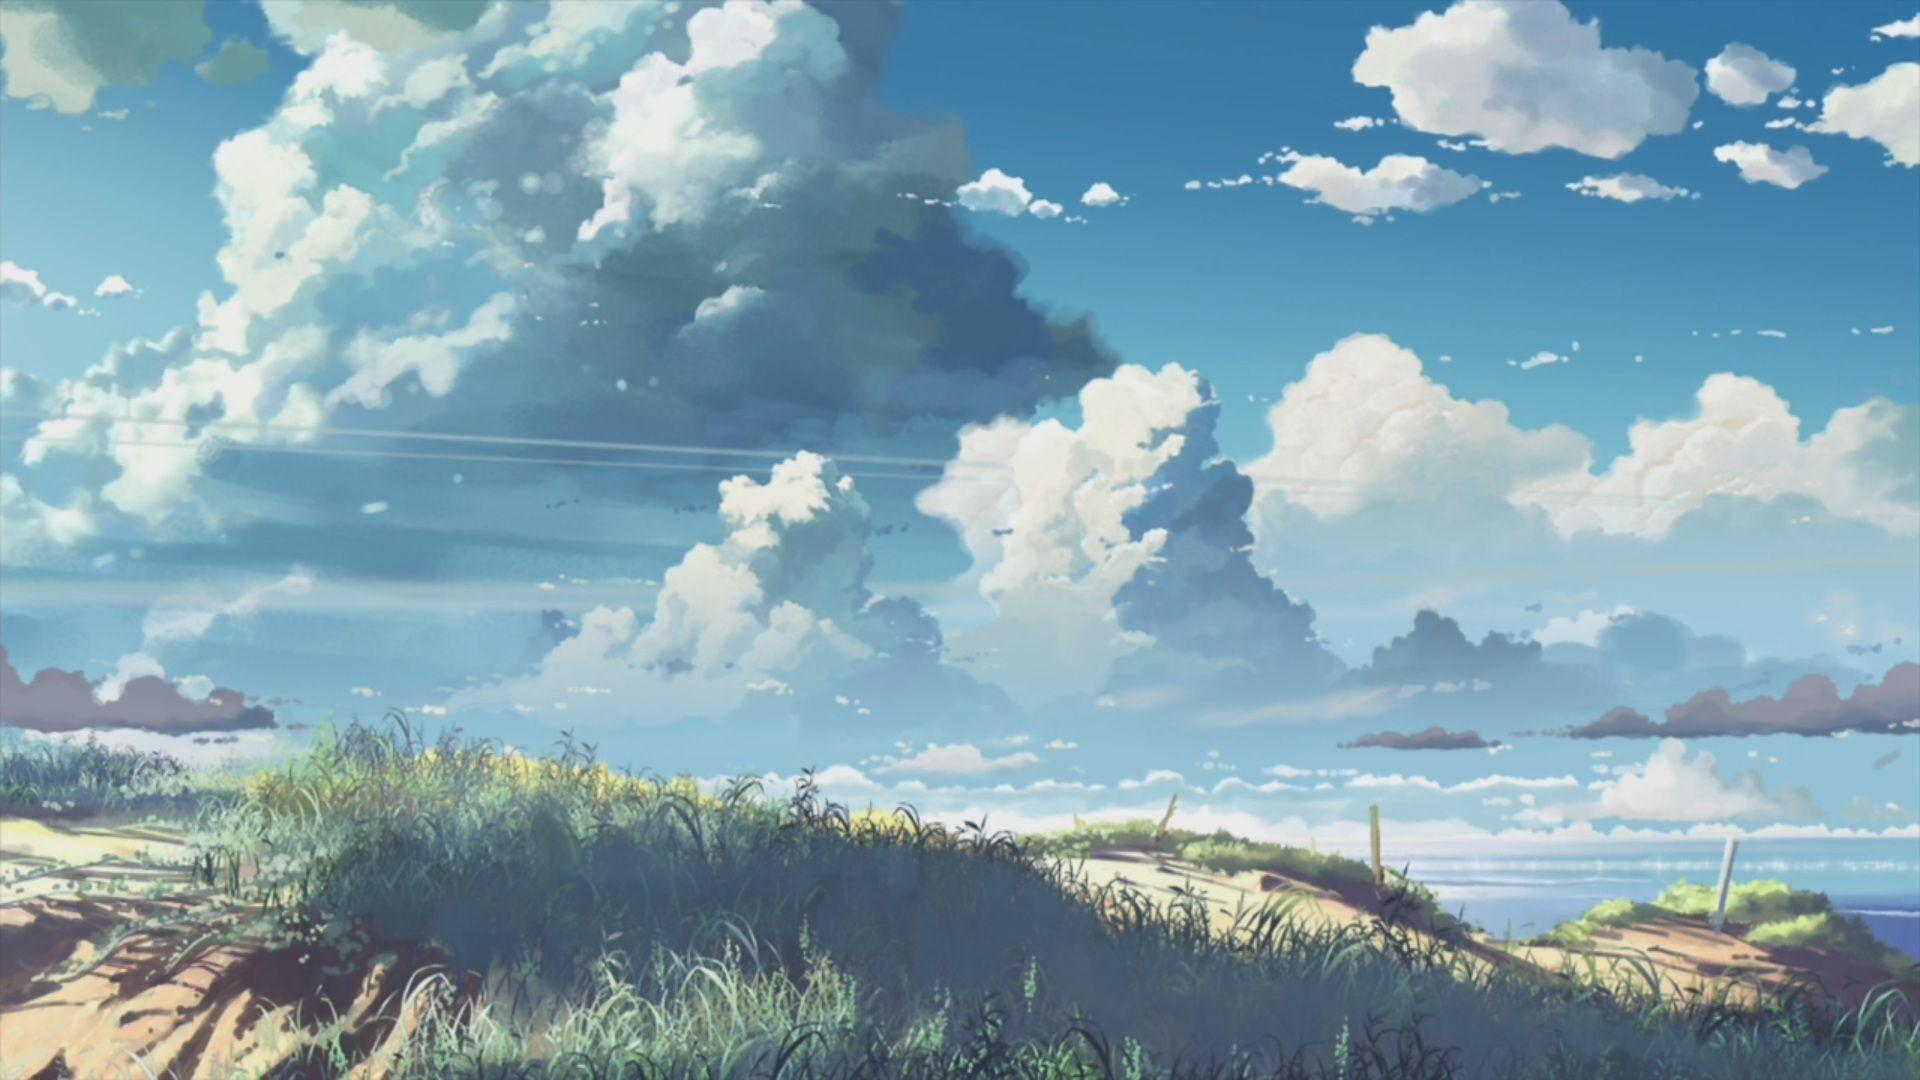 Anime Scenery Hd Wallpapers And Backgrounds